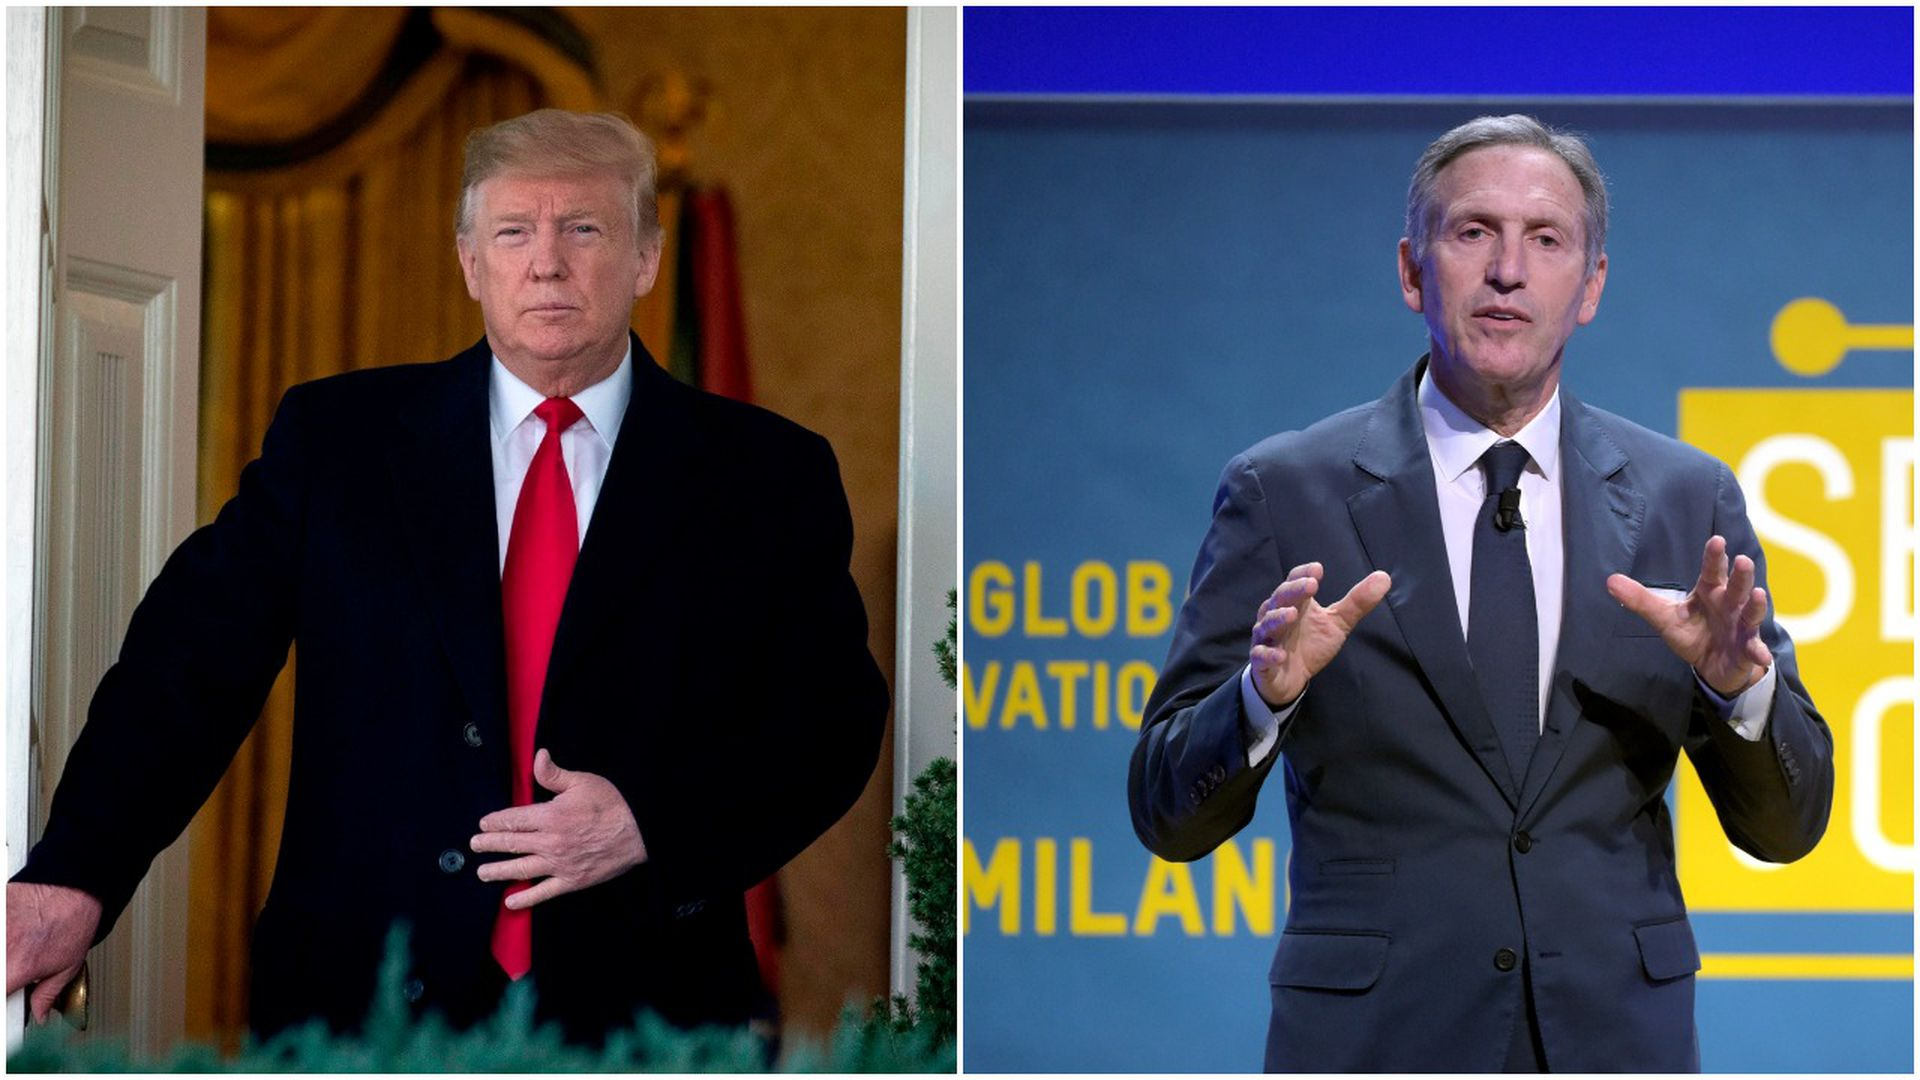 Cropped photo of President Trump and Howard Schultz